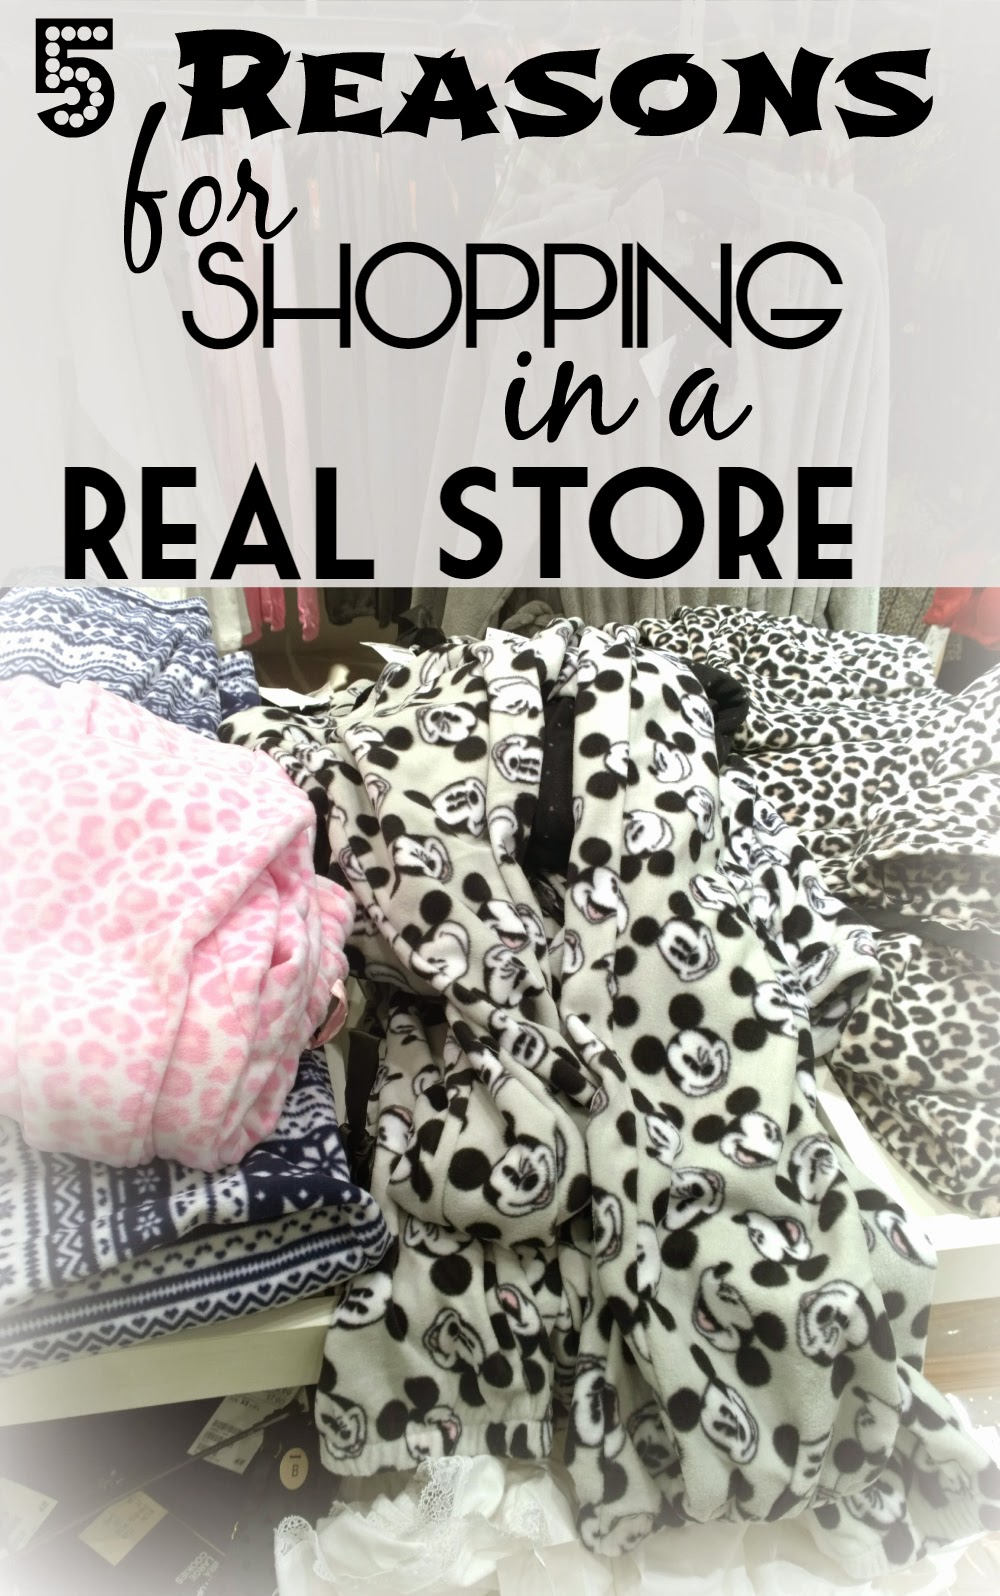 5 Reasons to shop brick & mortar, that is in a real, physical store | Funky Jungle, fashion and personal style blog